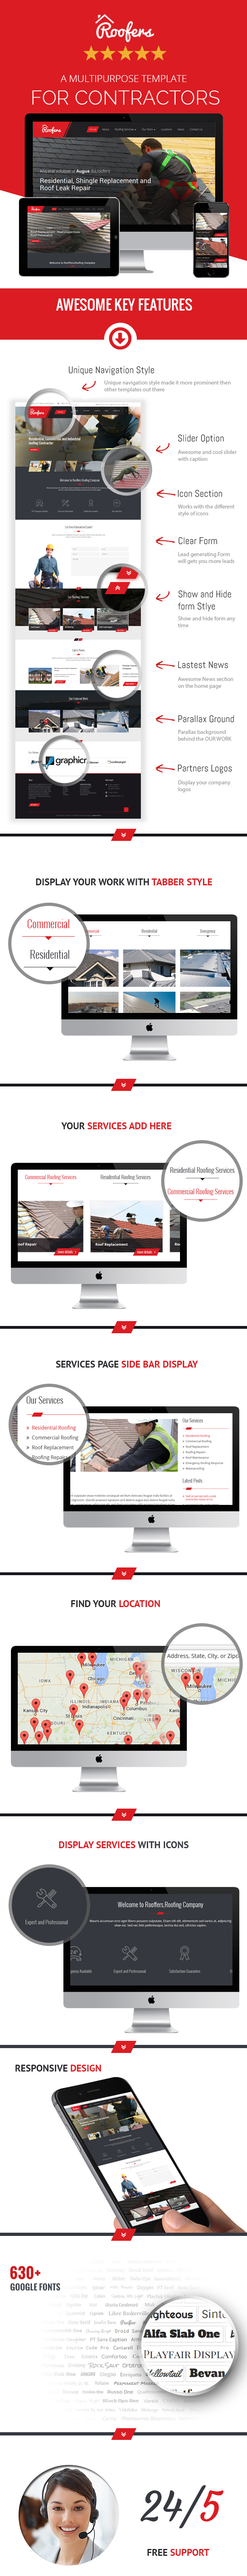 Roofers - Construction & Contractor HTML Template - Site Templates ...